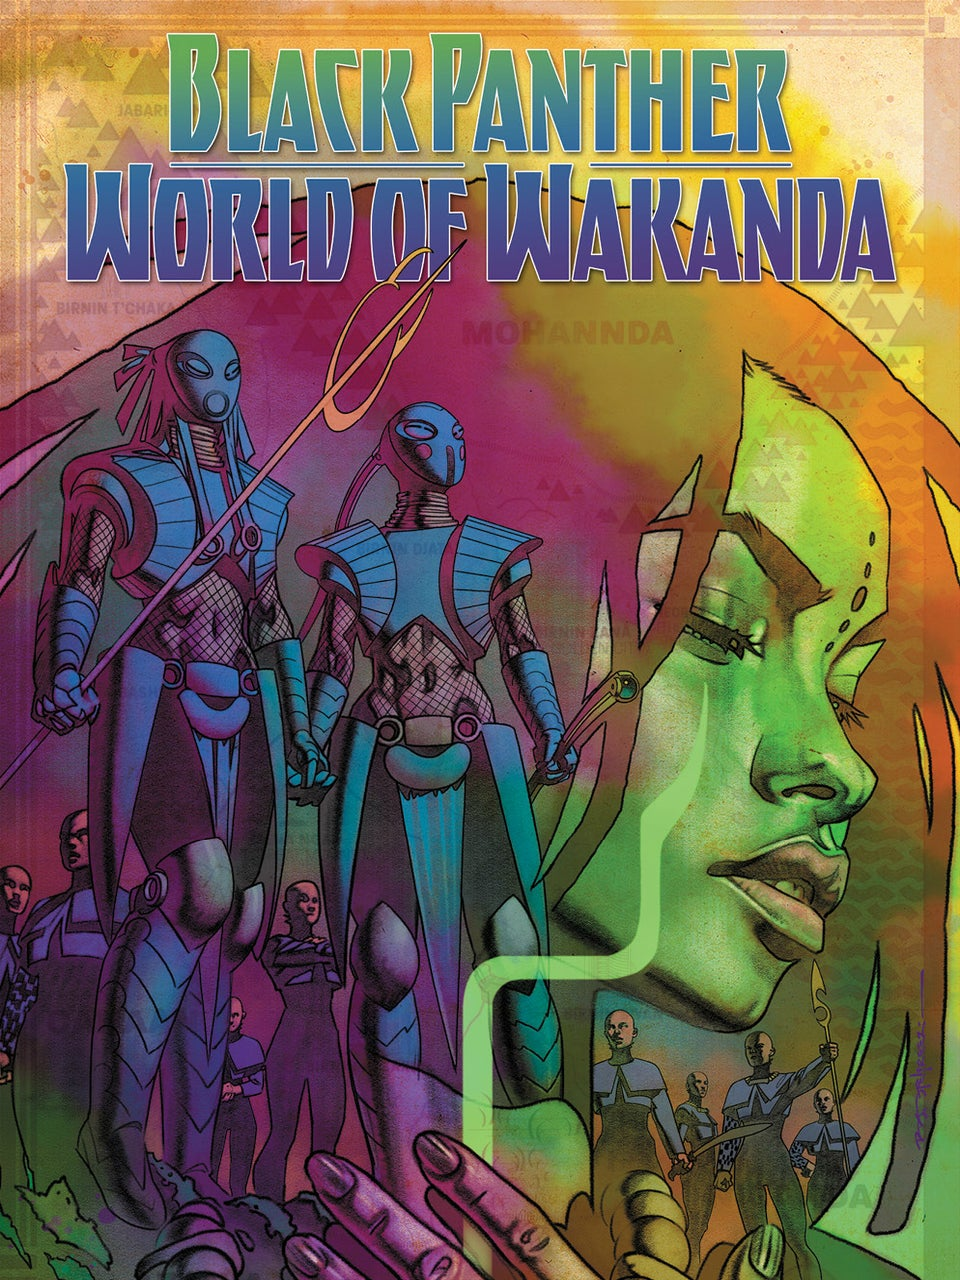 Roxane Gay And Yona Harvey Didn't Hesitate To Take On The 'World Of Wakanda'